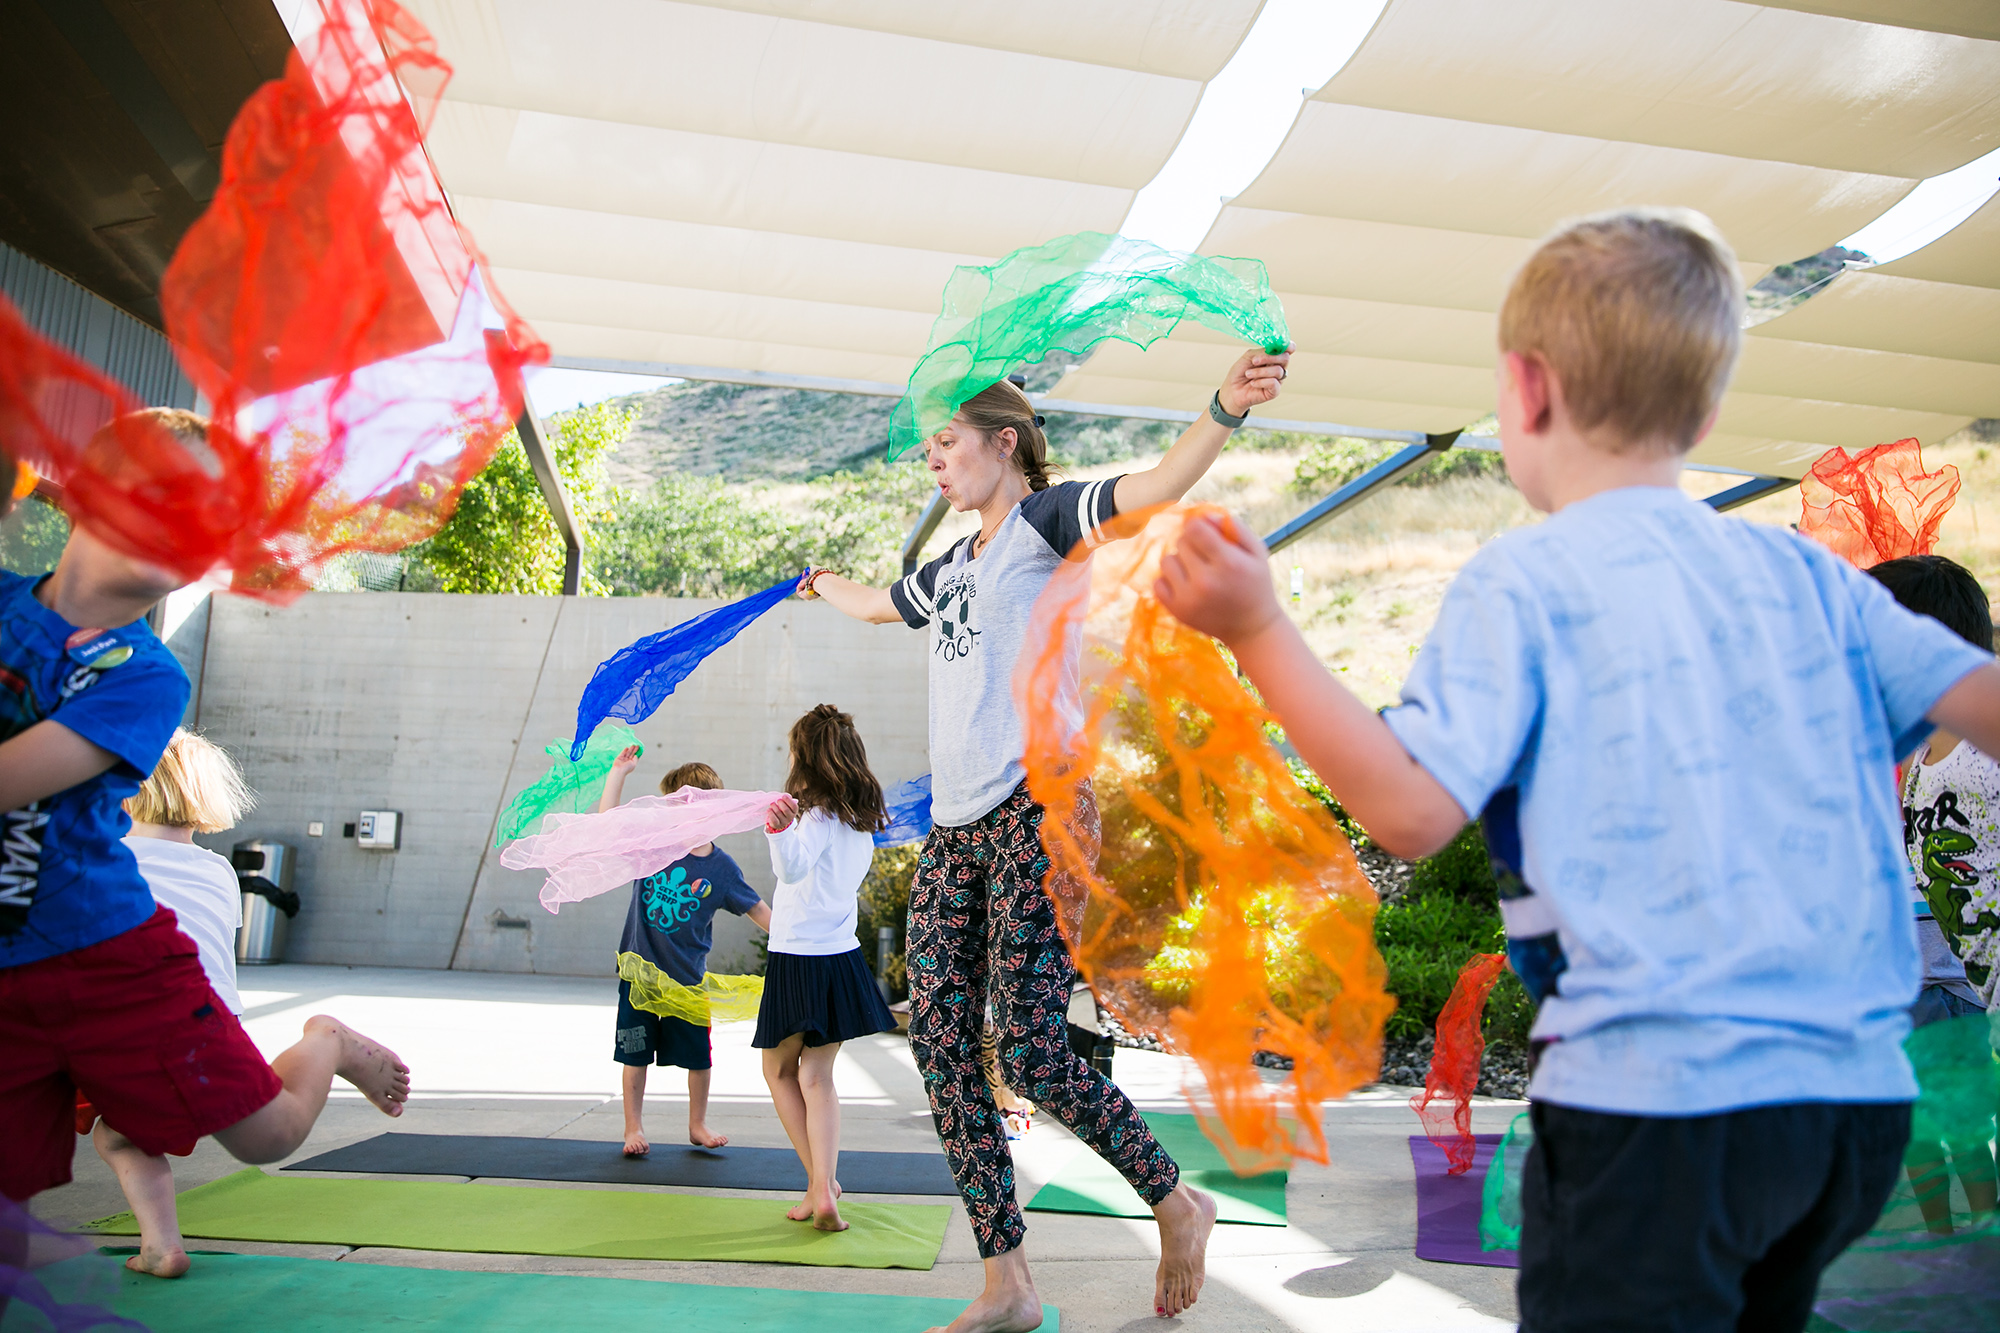 A yoga instructor leads children in improvised dance waving colorful scarves.